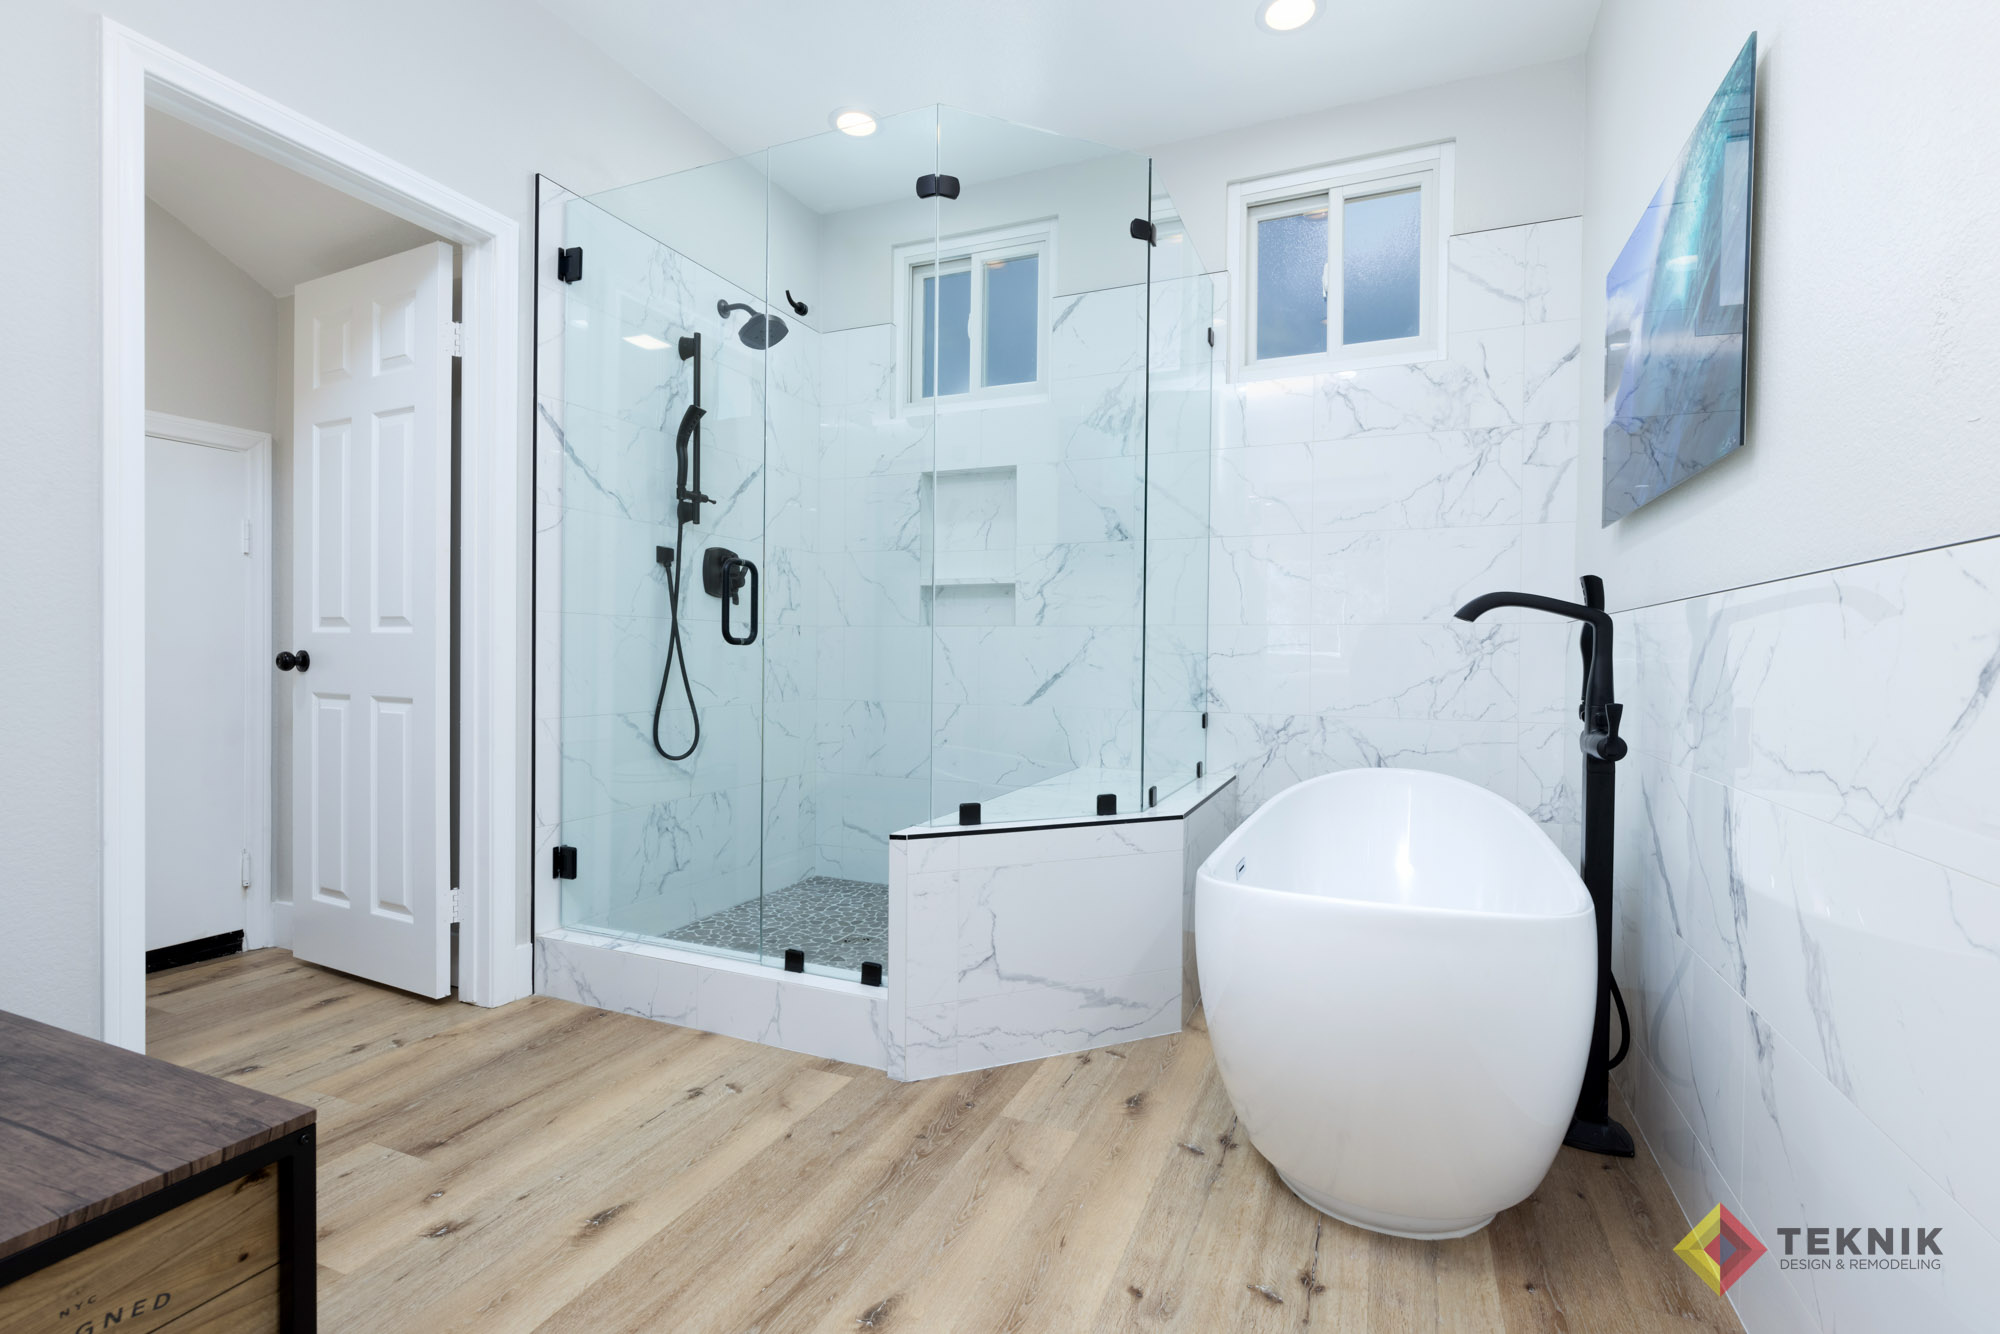 white marble bathroom tile and tub with a glass shower and pine flooring a san diego bathroom remodel